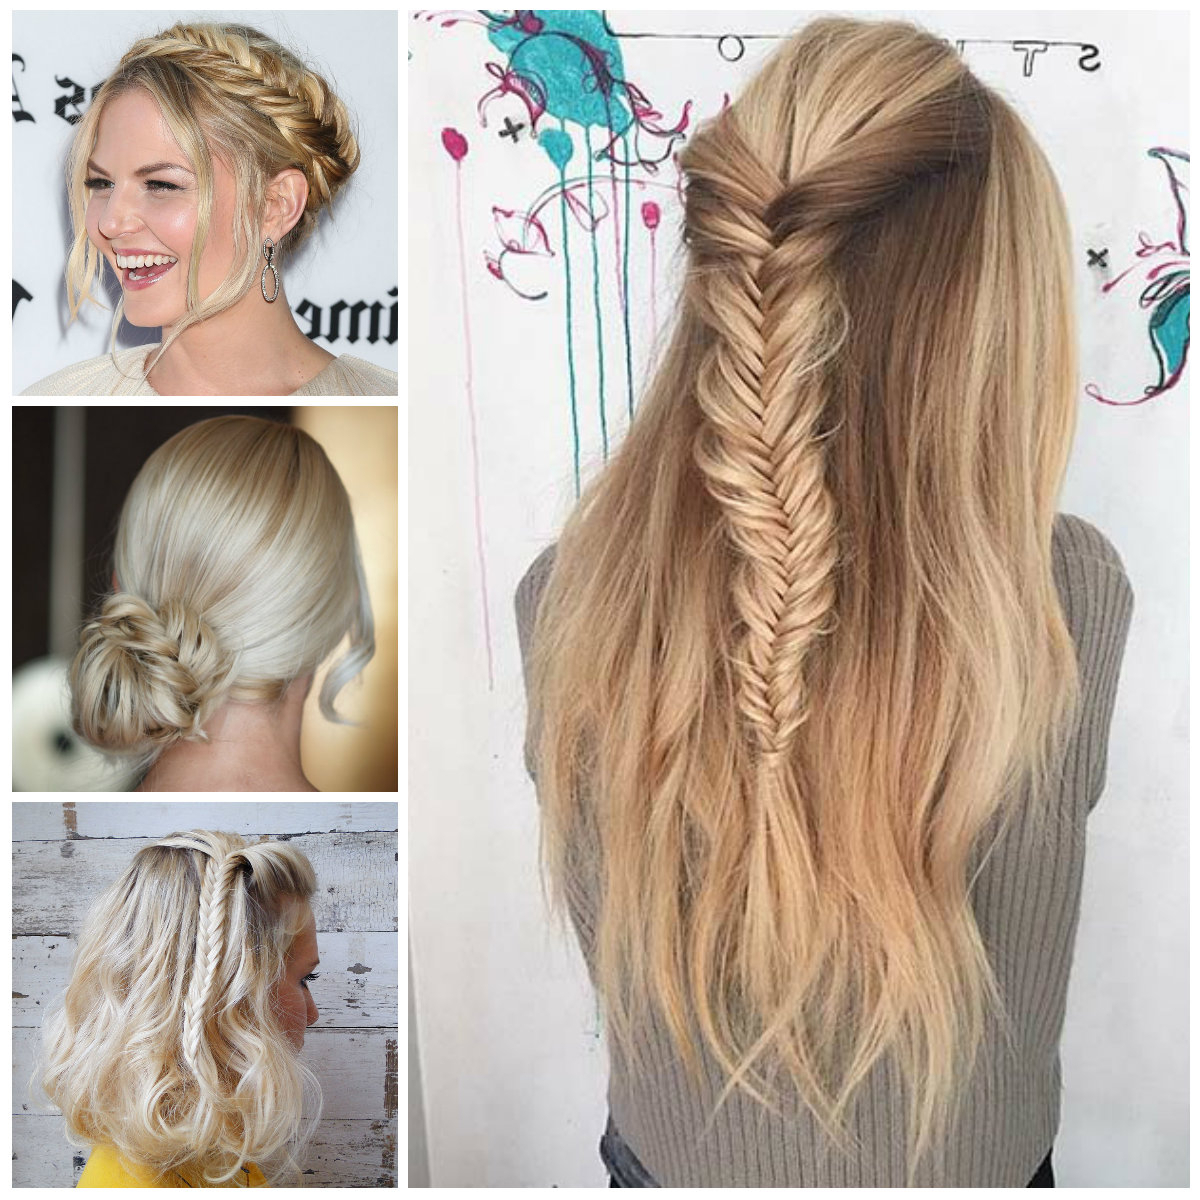 Best And Newest Fishtail Crown Braided Hairstyles With 2016 Hottest Hairstyles With Fishtail Braids (View 2 of 20)